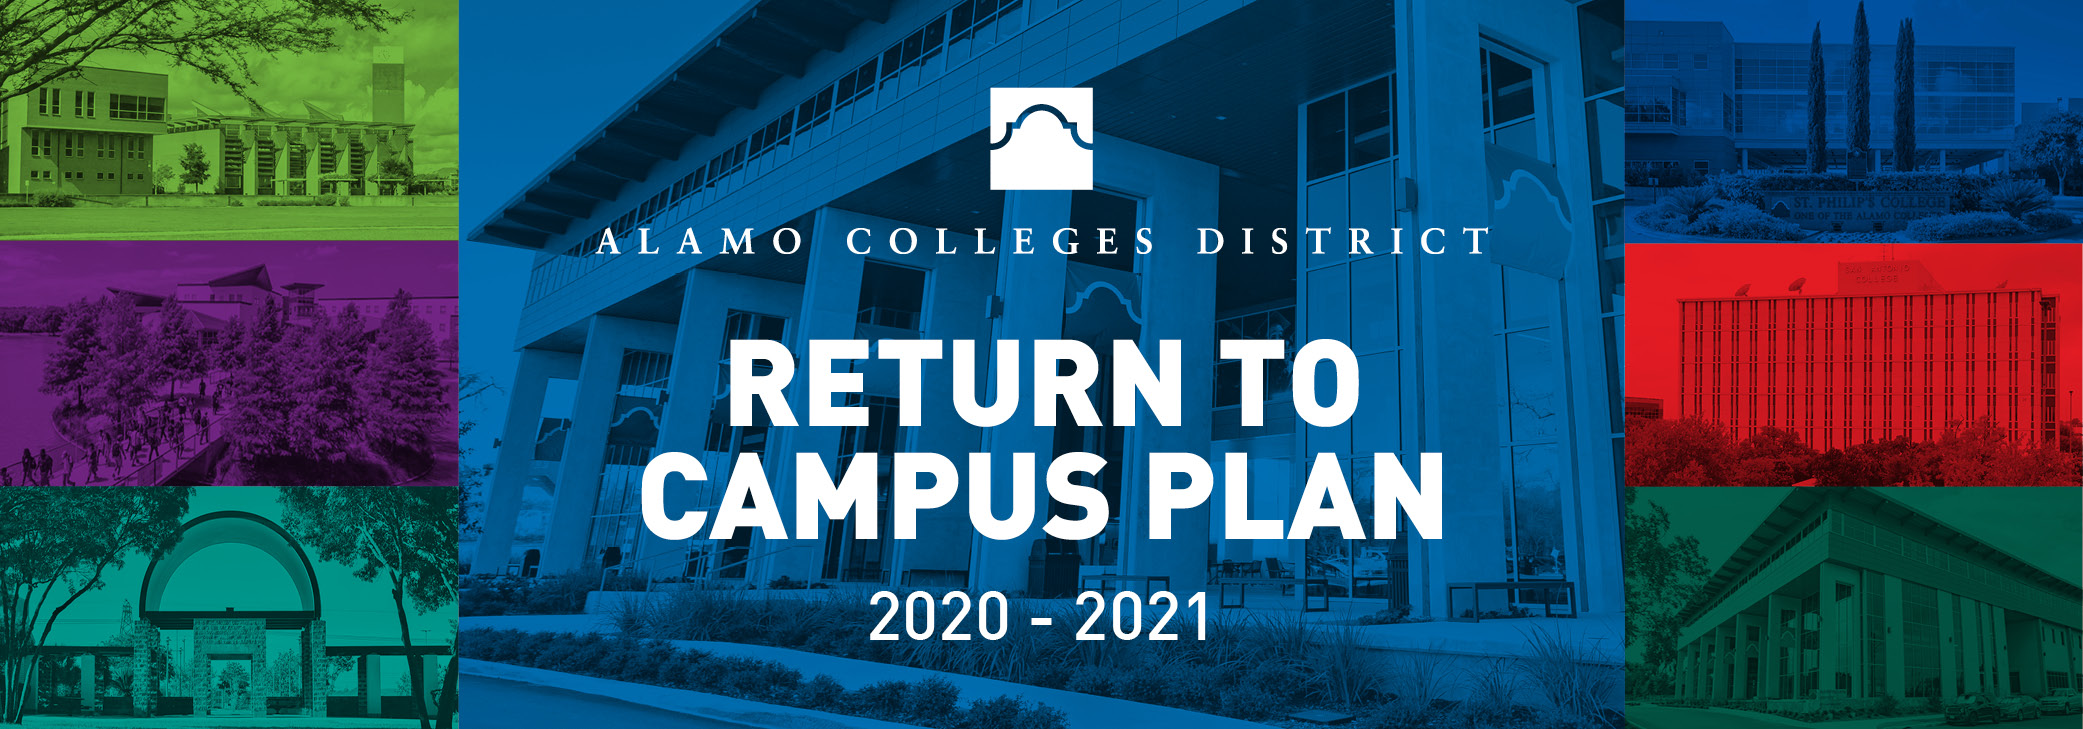 Return to Campus Plan Web Header.jpg